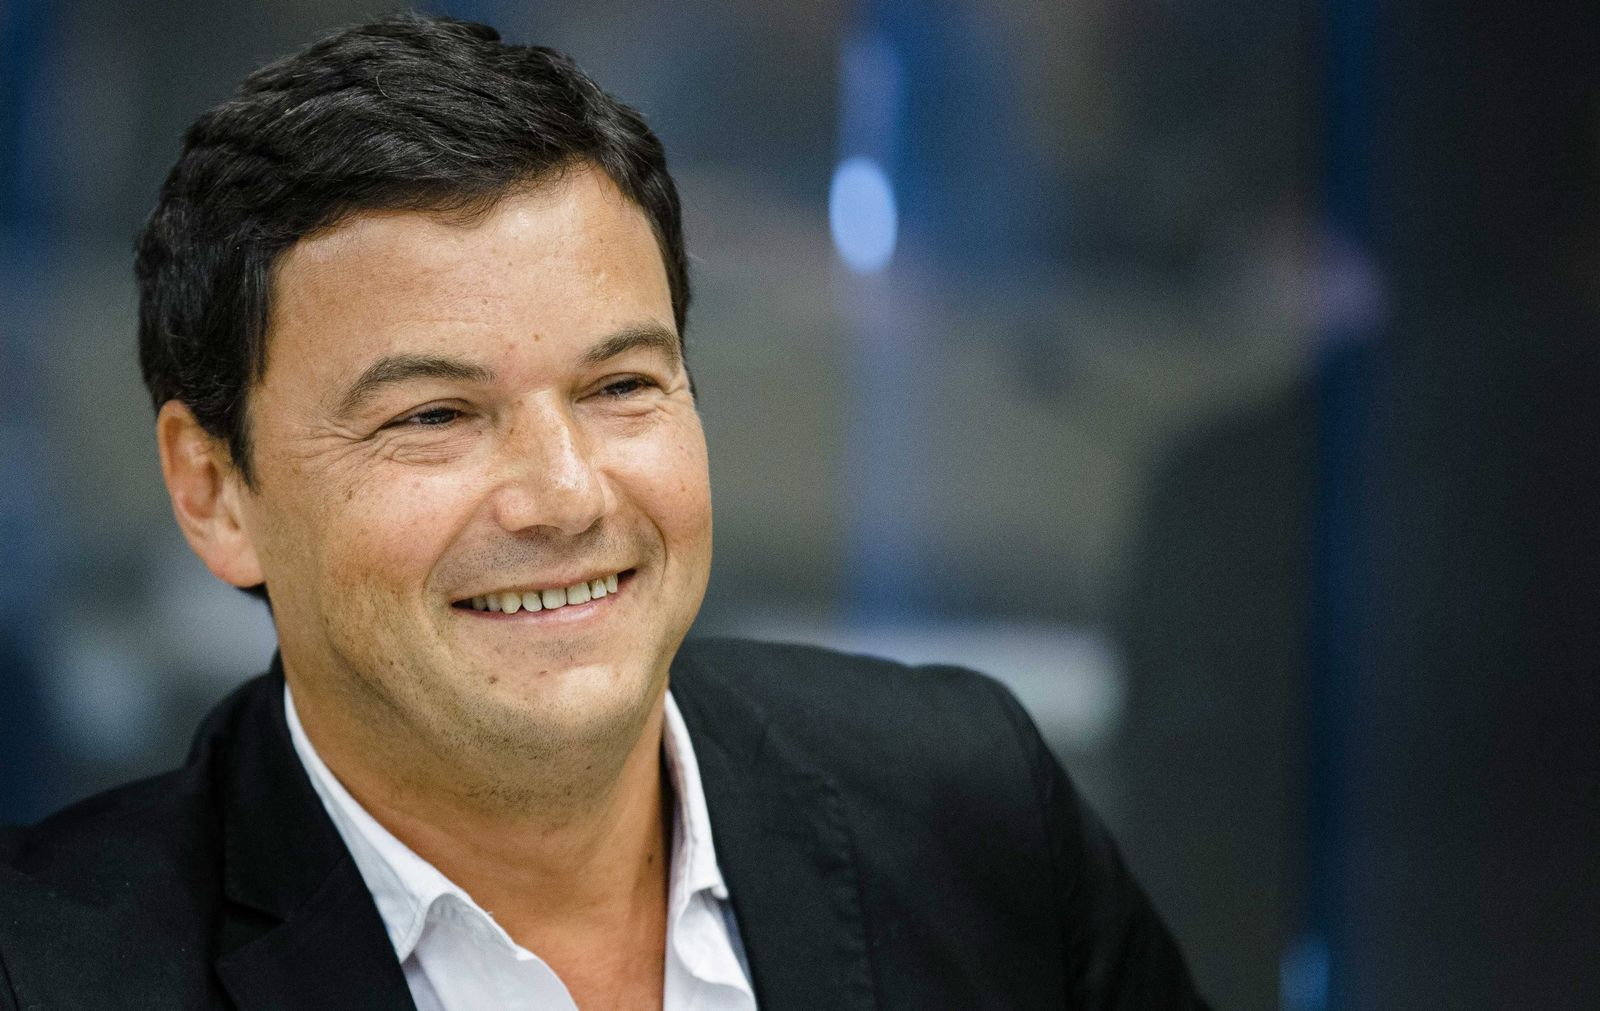 Europas Linke/ Thomas Piketty